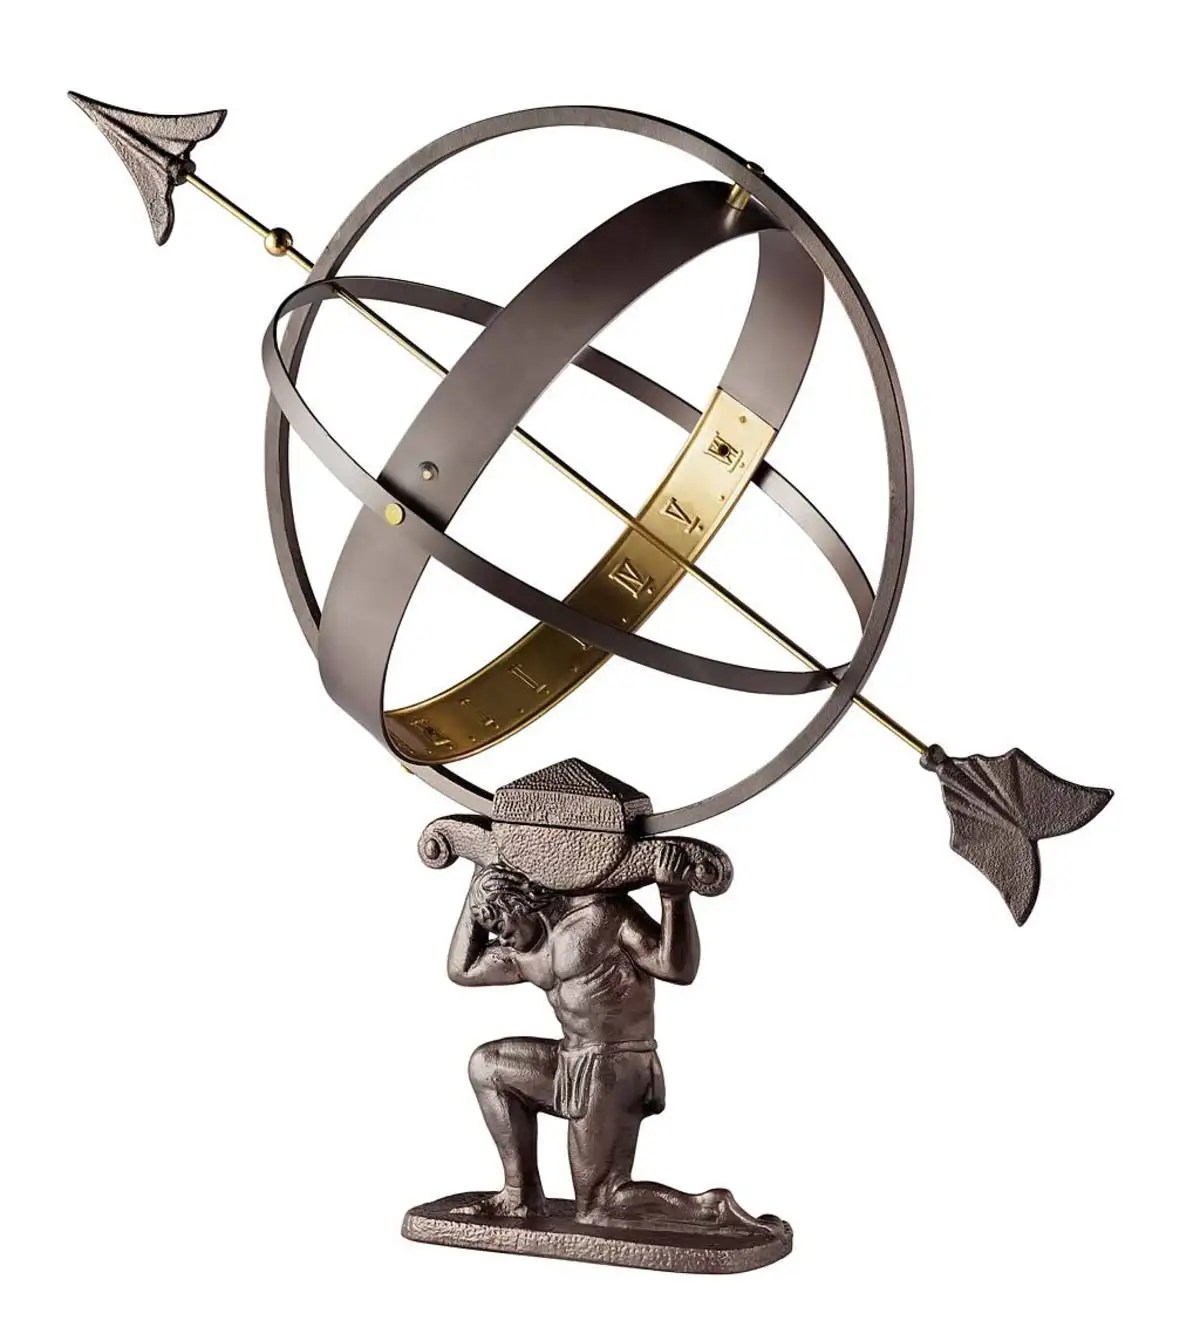 Atlas Statues For Sale Atlas Armillary Sundial Metal Yard Sculpture Metal